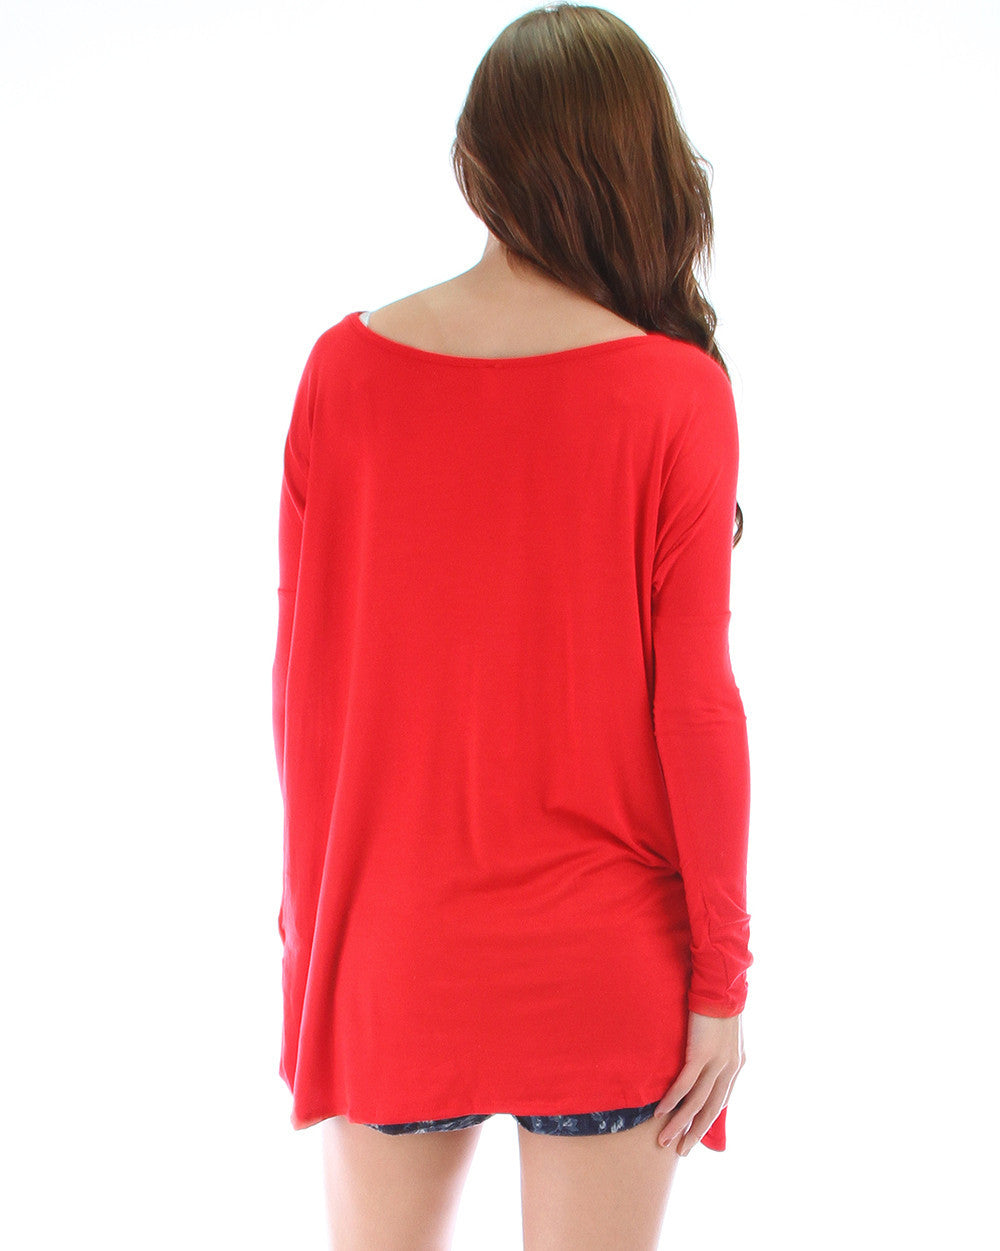 Over-Sized Long Sleeve Tunic Top In Red